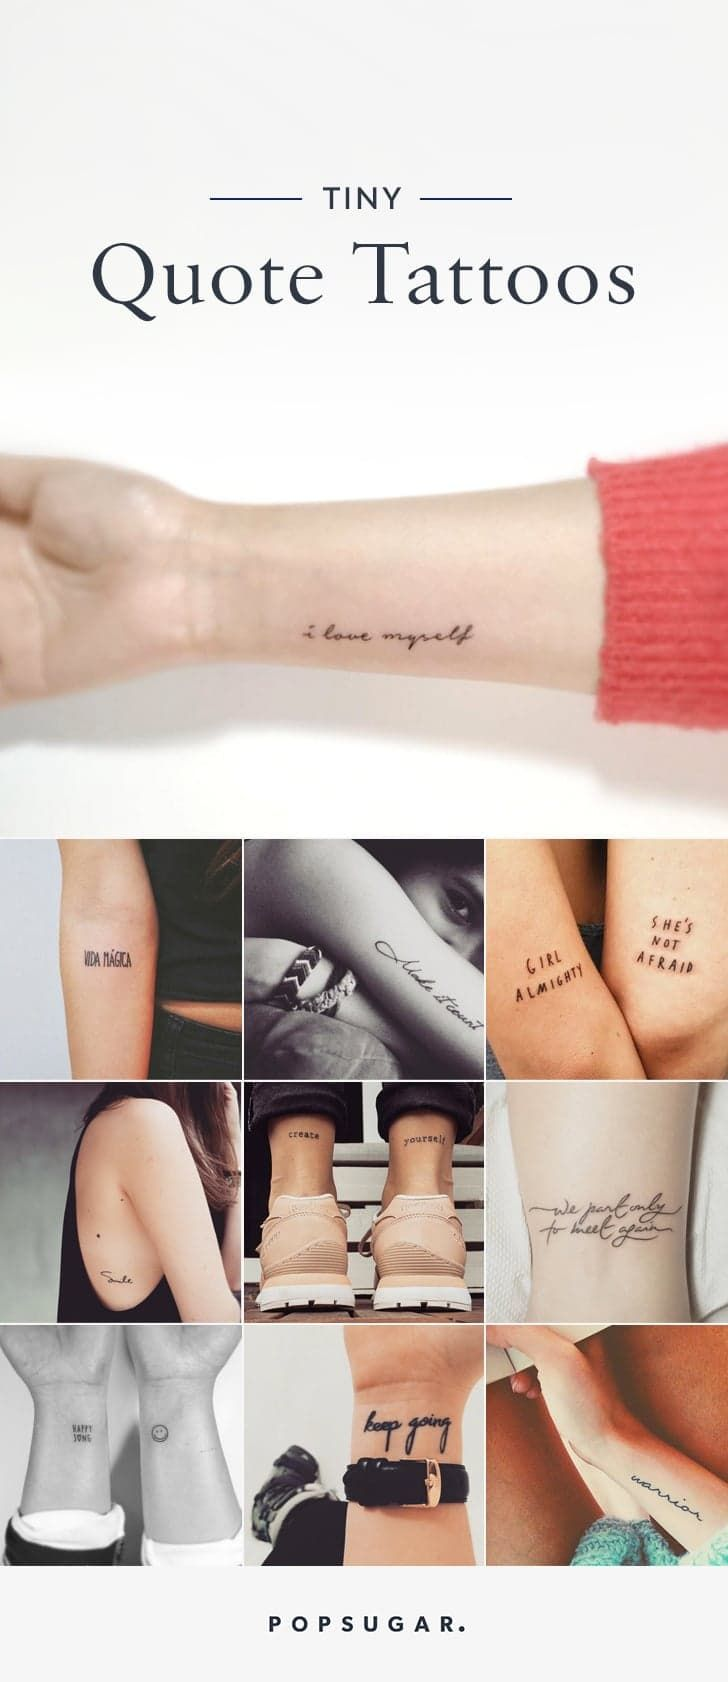 Thinking about getting inked? Look no further than these amazing quote tattoos for a dose of inspiration.